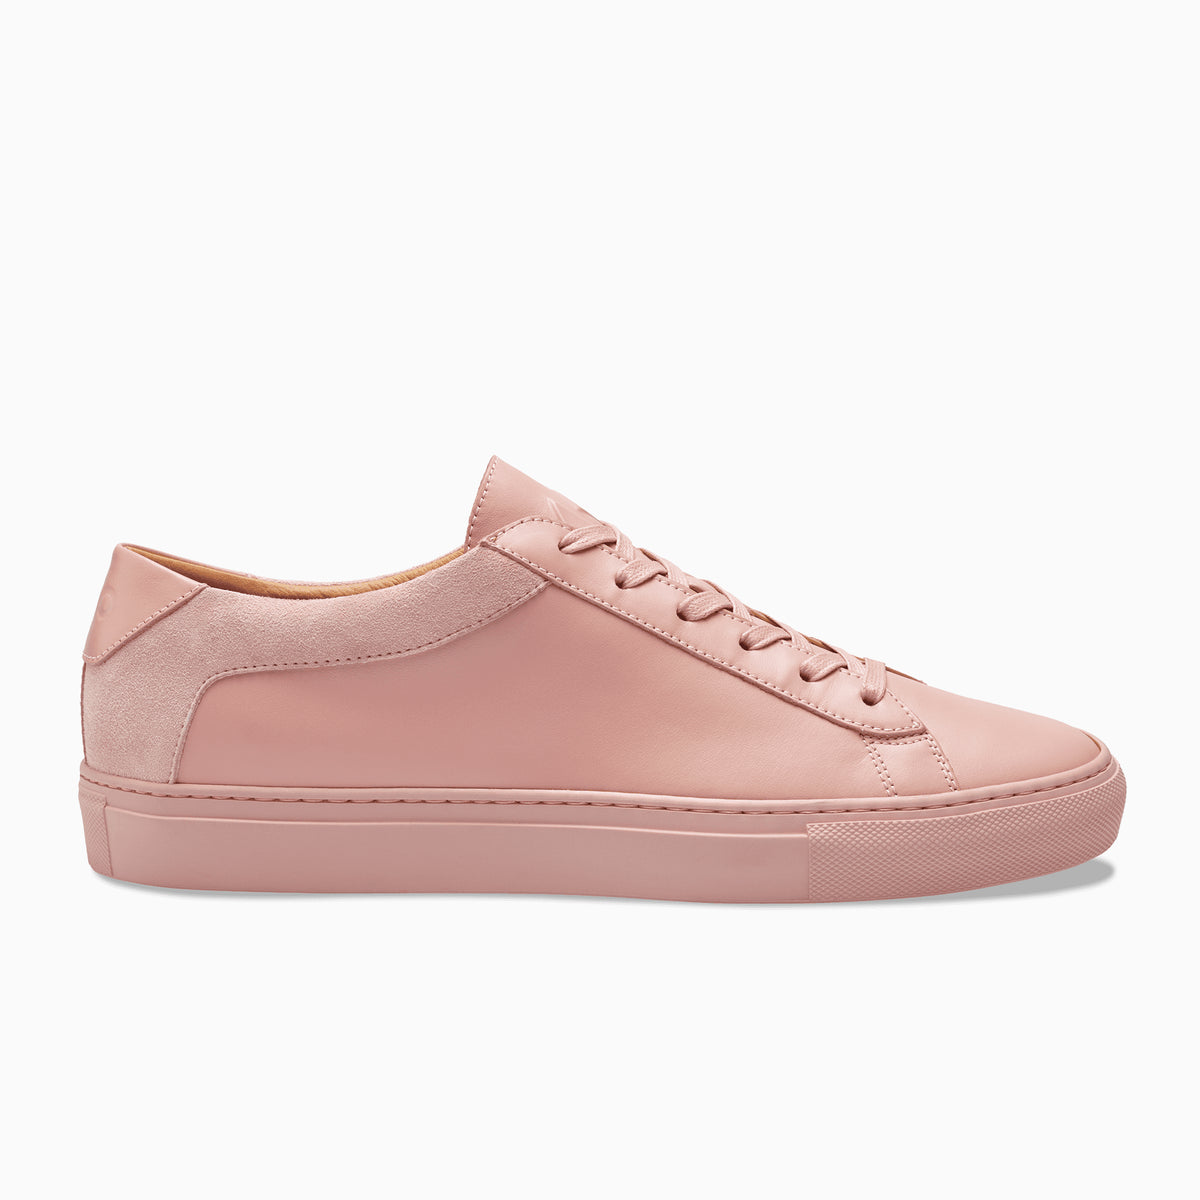 6ebebc05f589 Women s Low Top Leather Sneaker in Pink